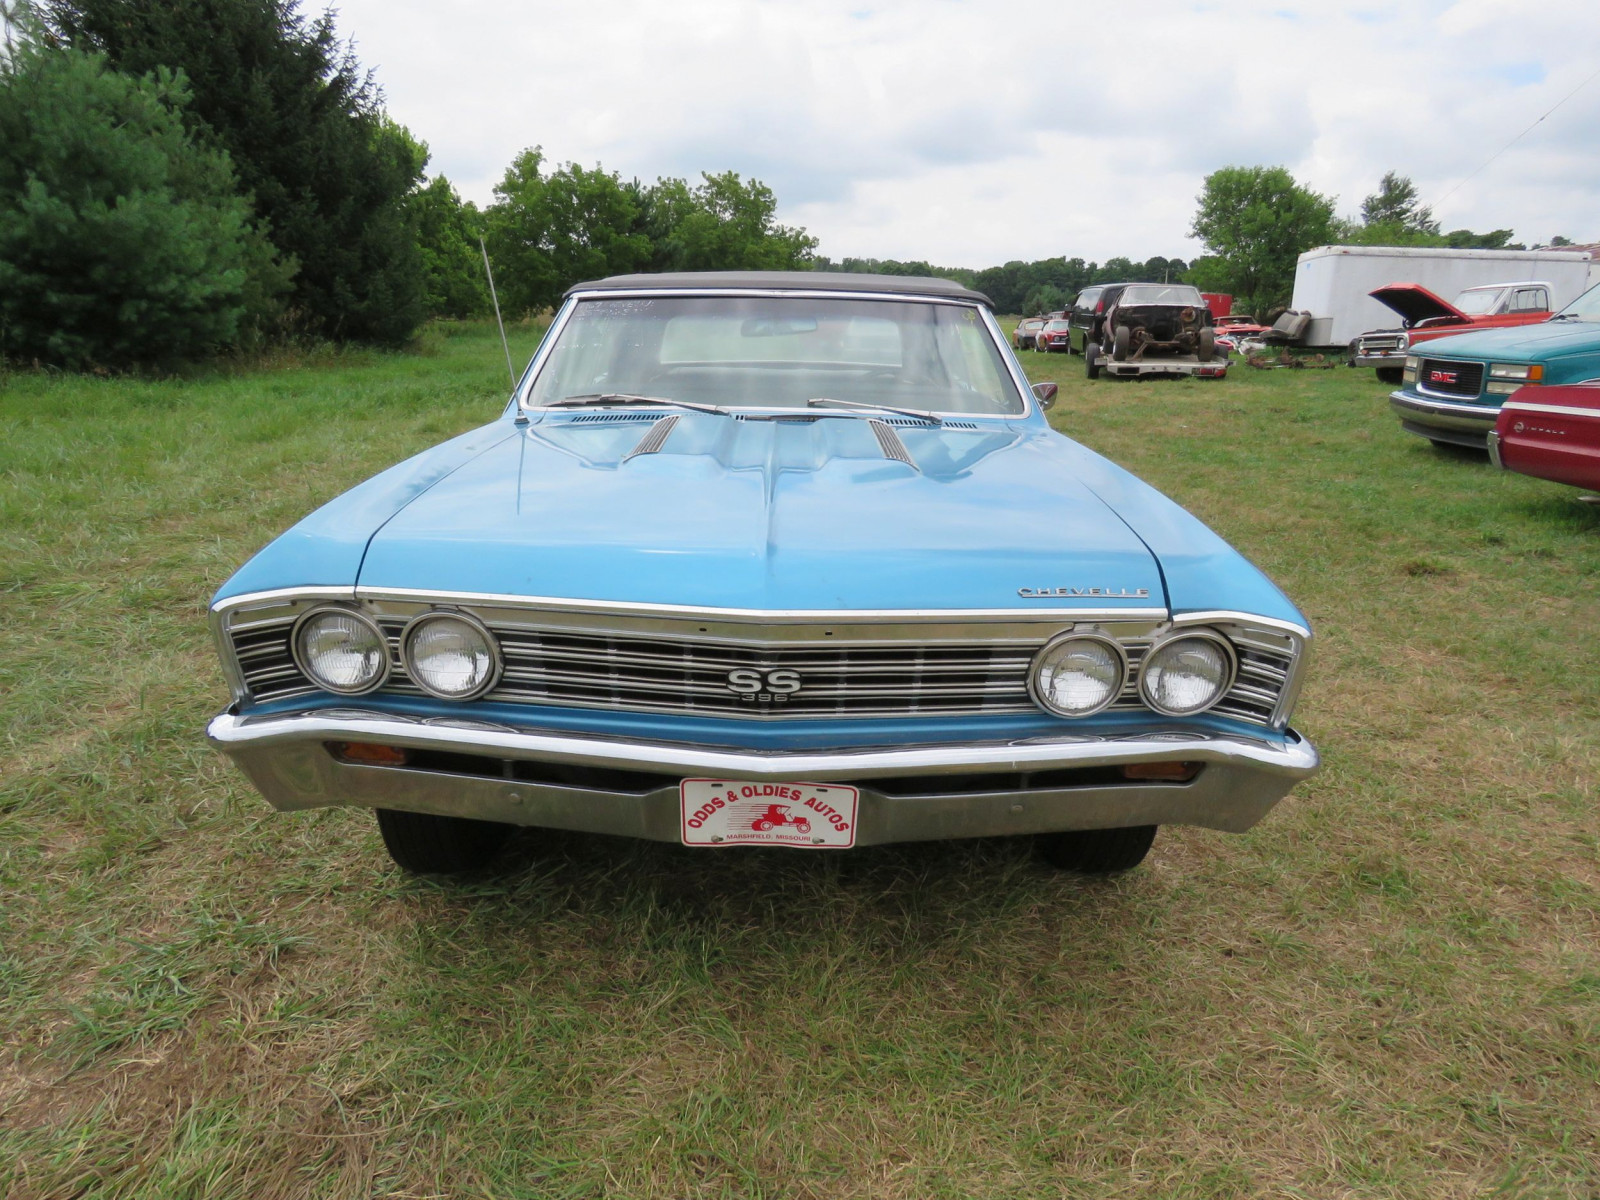 1967 Chevrolet Chevelle SS Convertible - Image 2